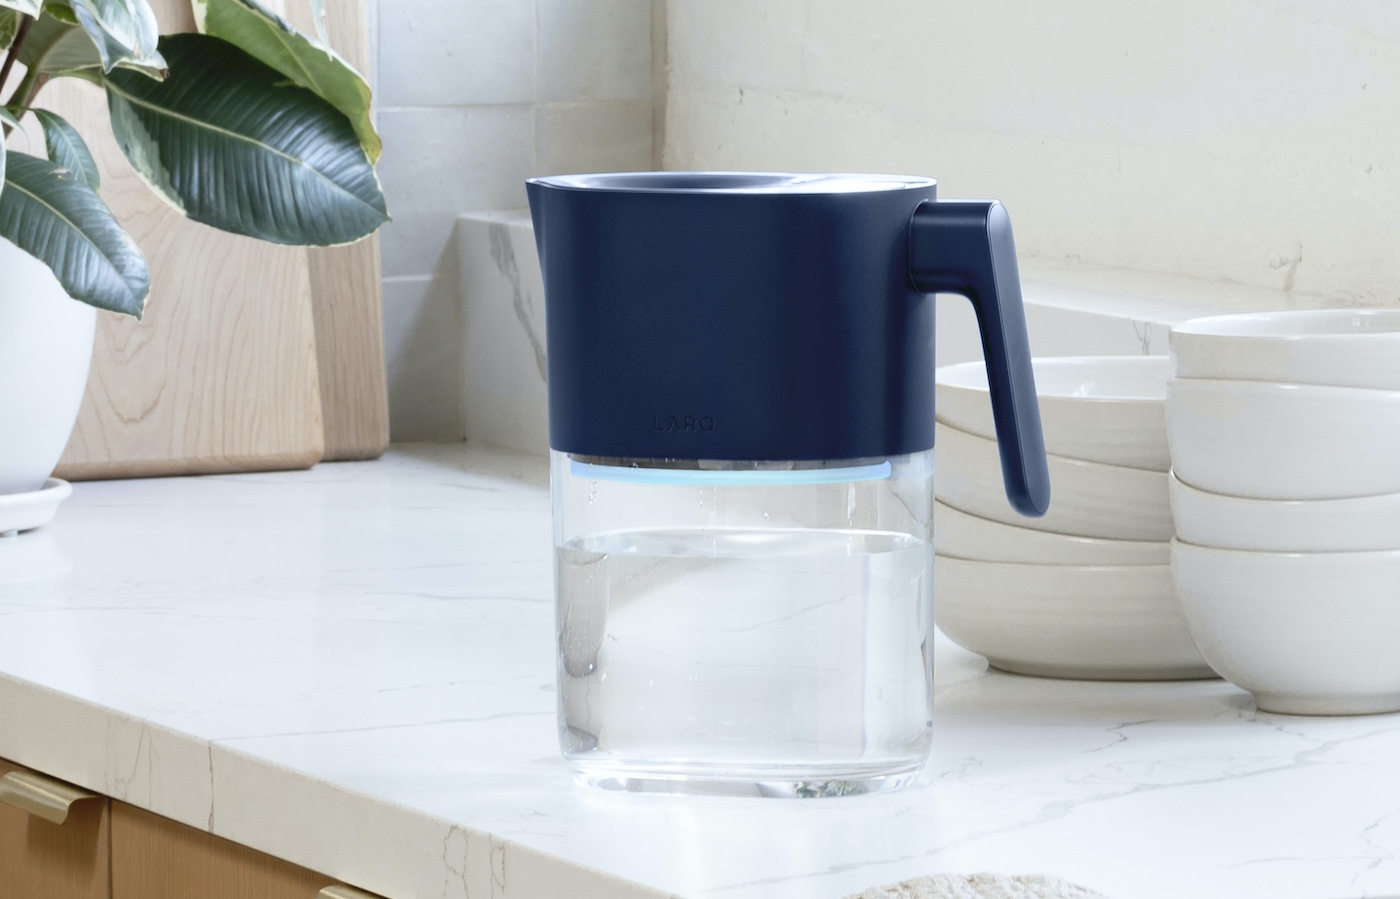 This Hi-Tech Pitcher Uses UV Light To Provide the Purest Drinking Water With Every Pour